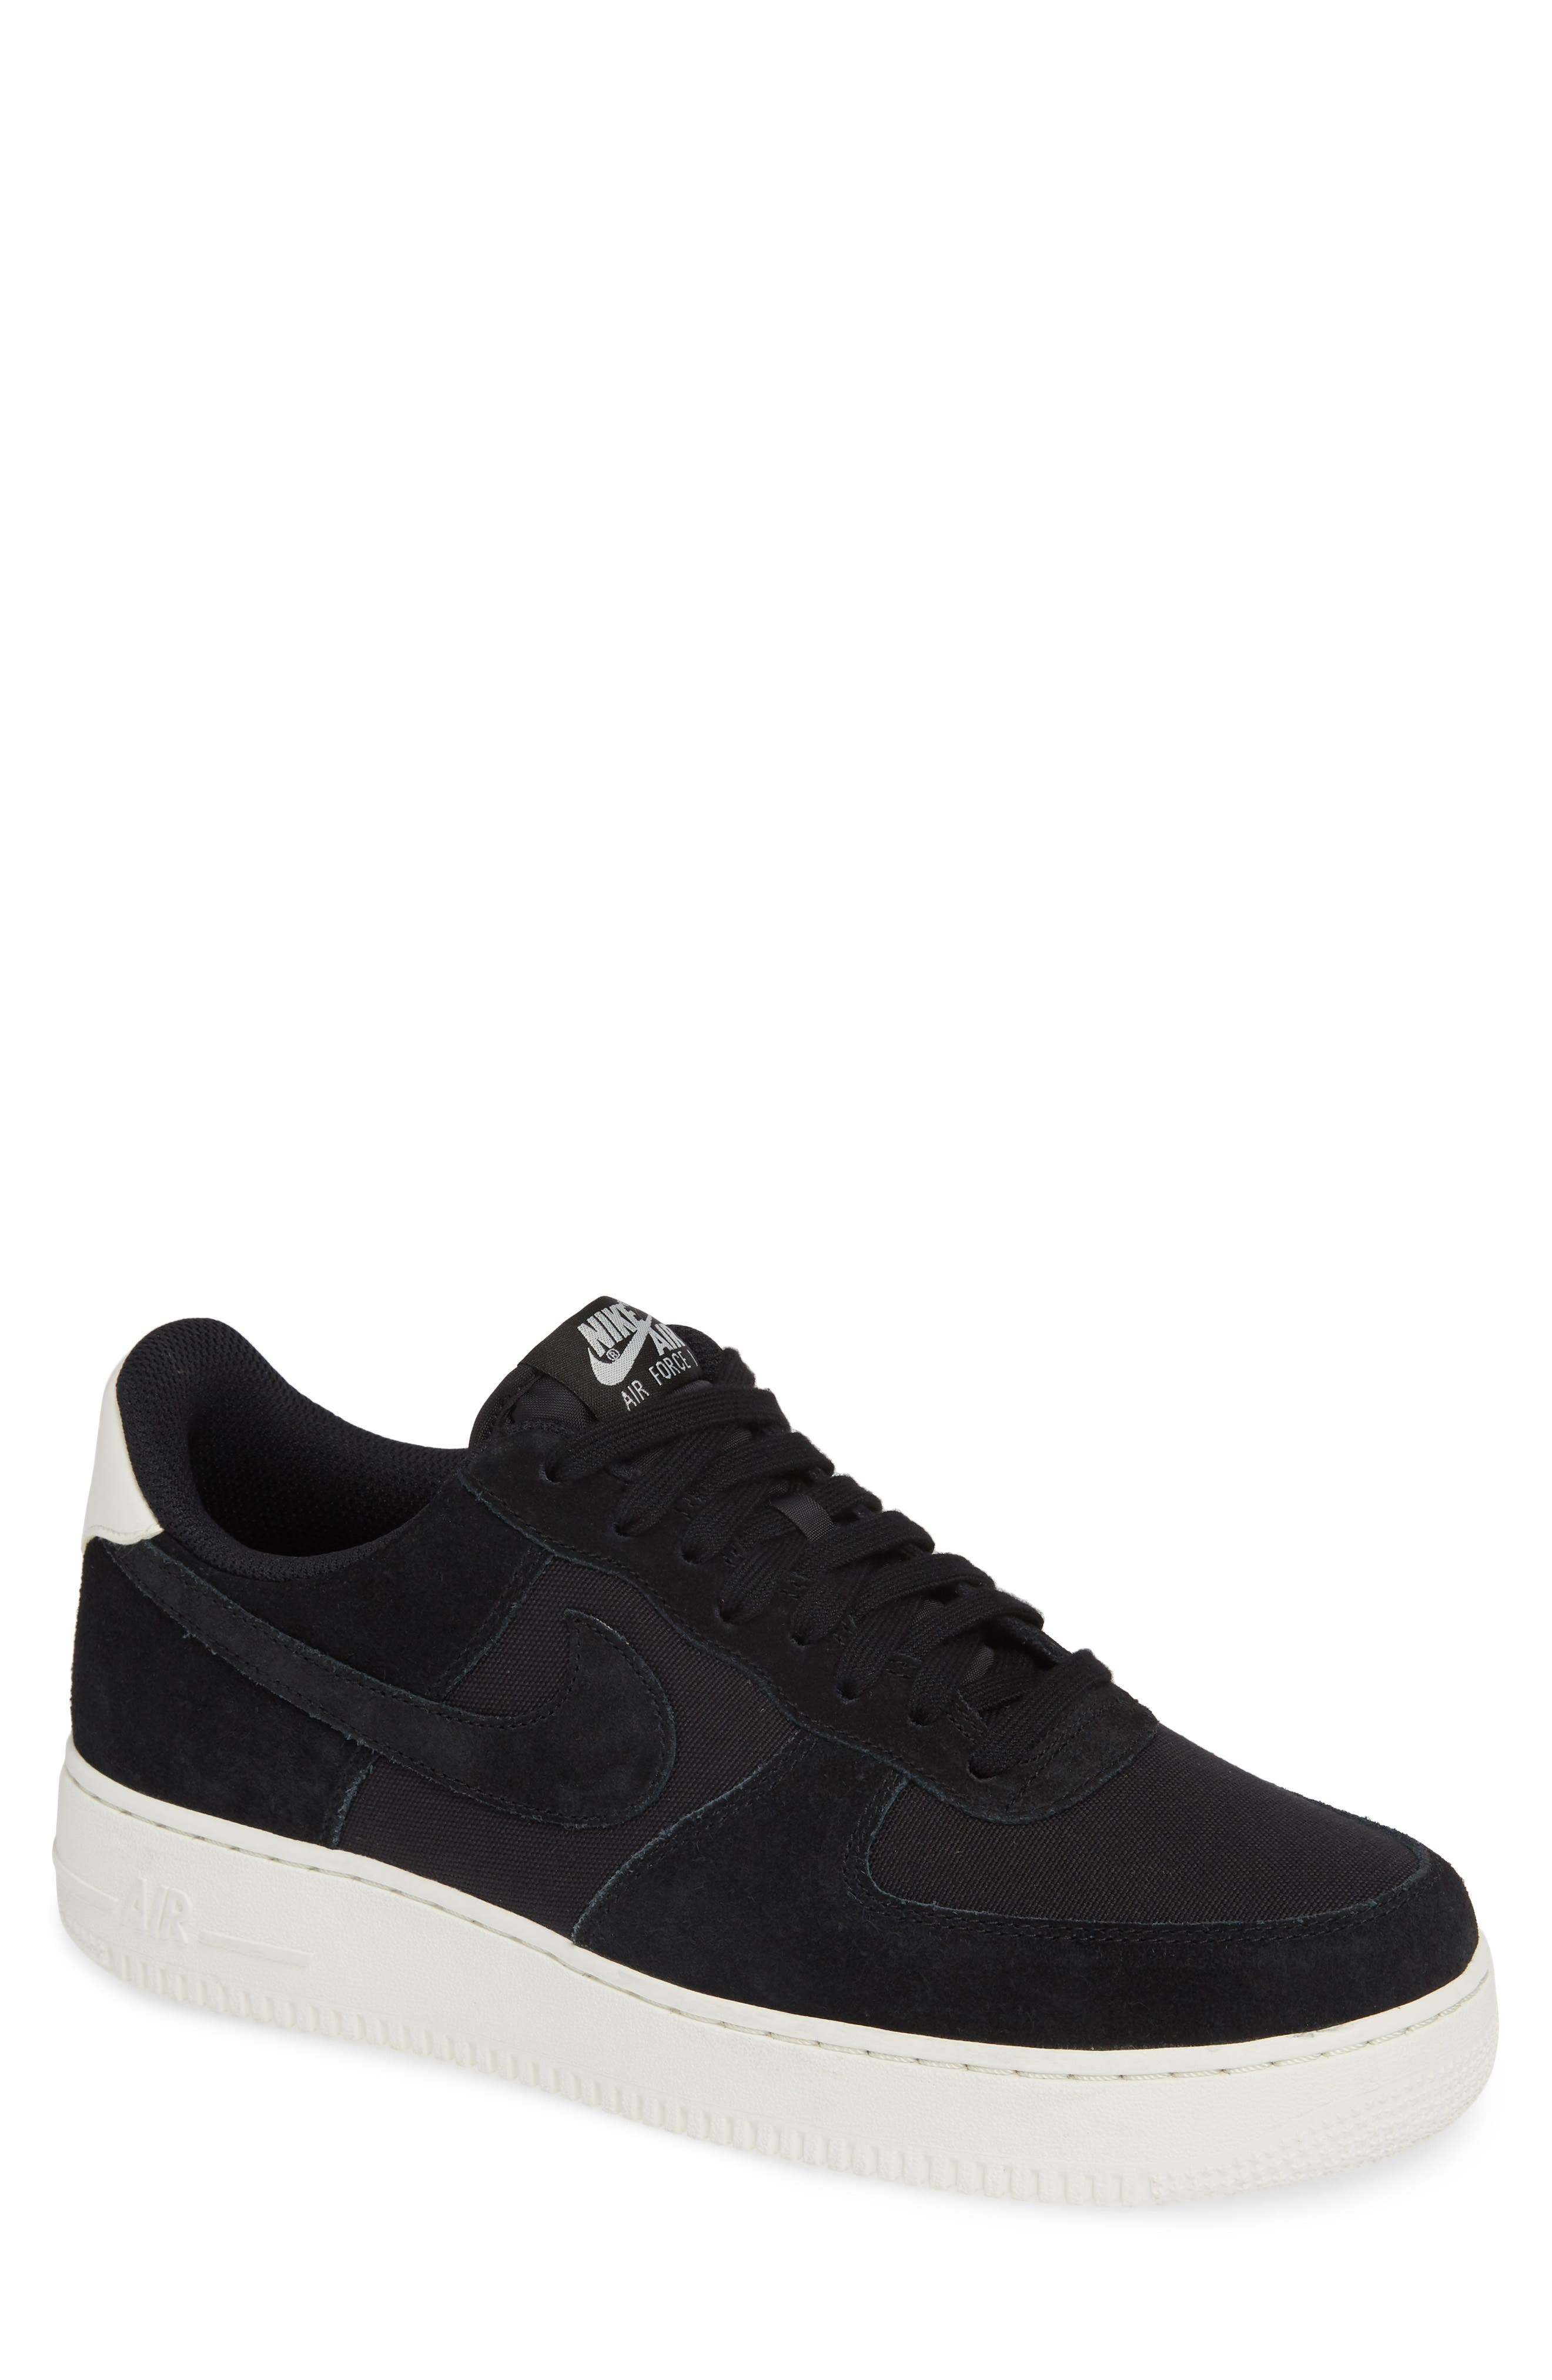 Air Force 1 '07 Suede Sneaker,                         Main,                         color, BLACK/ SAIL